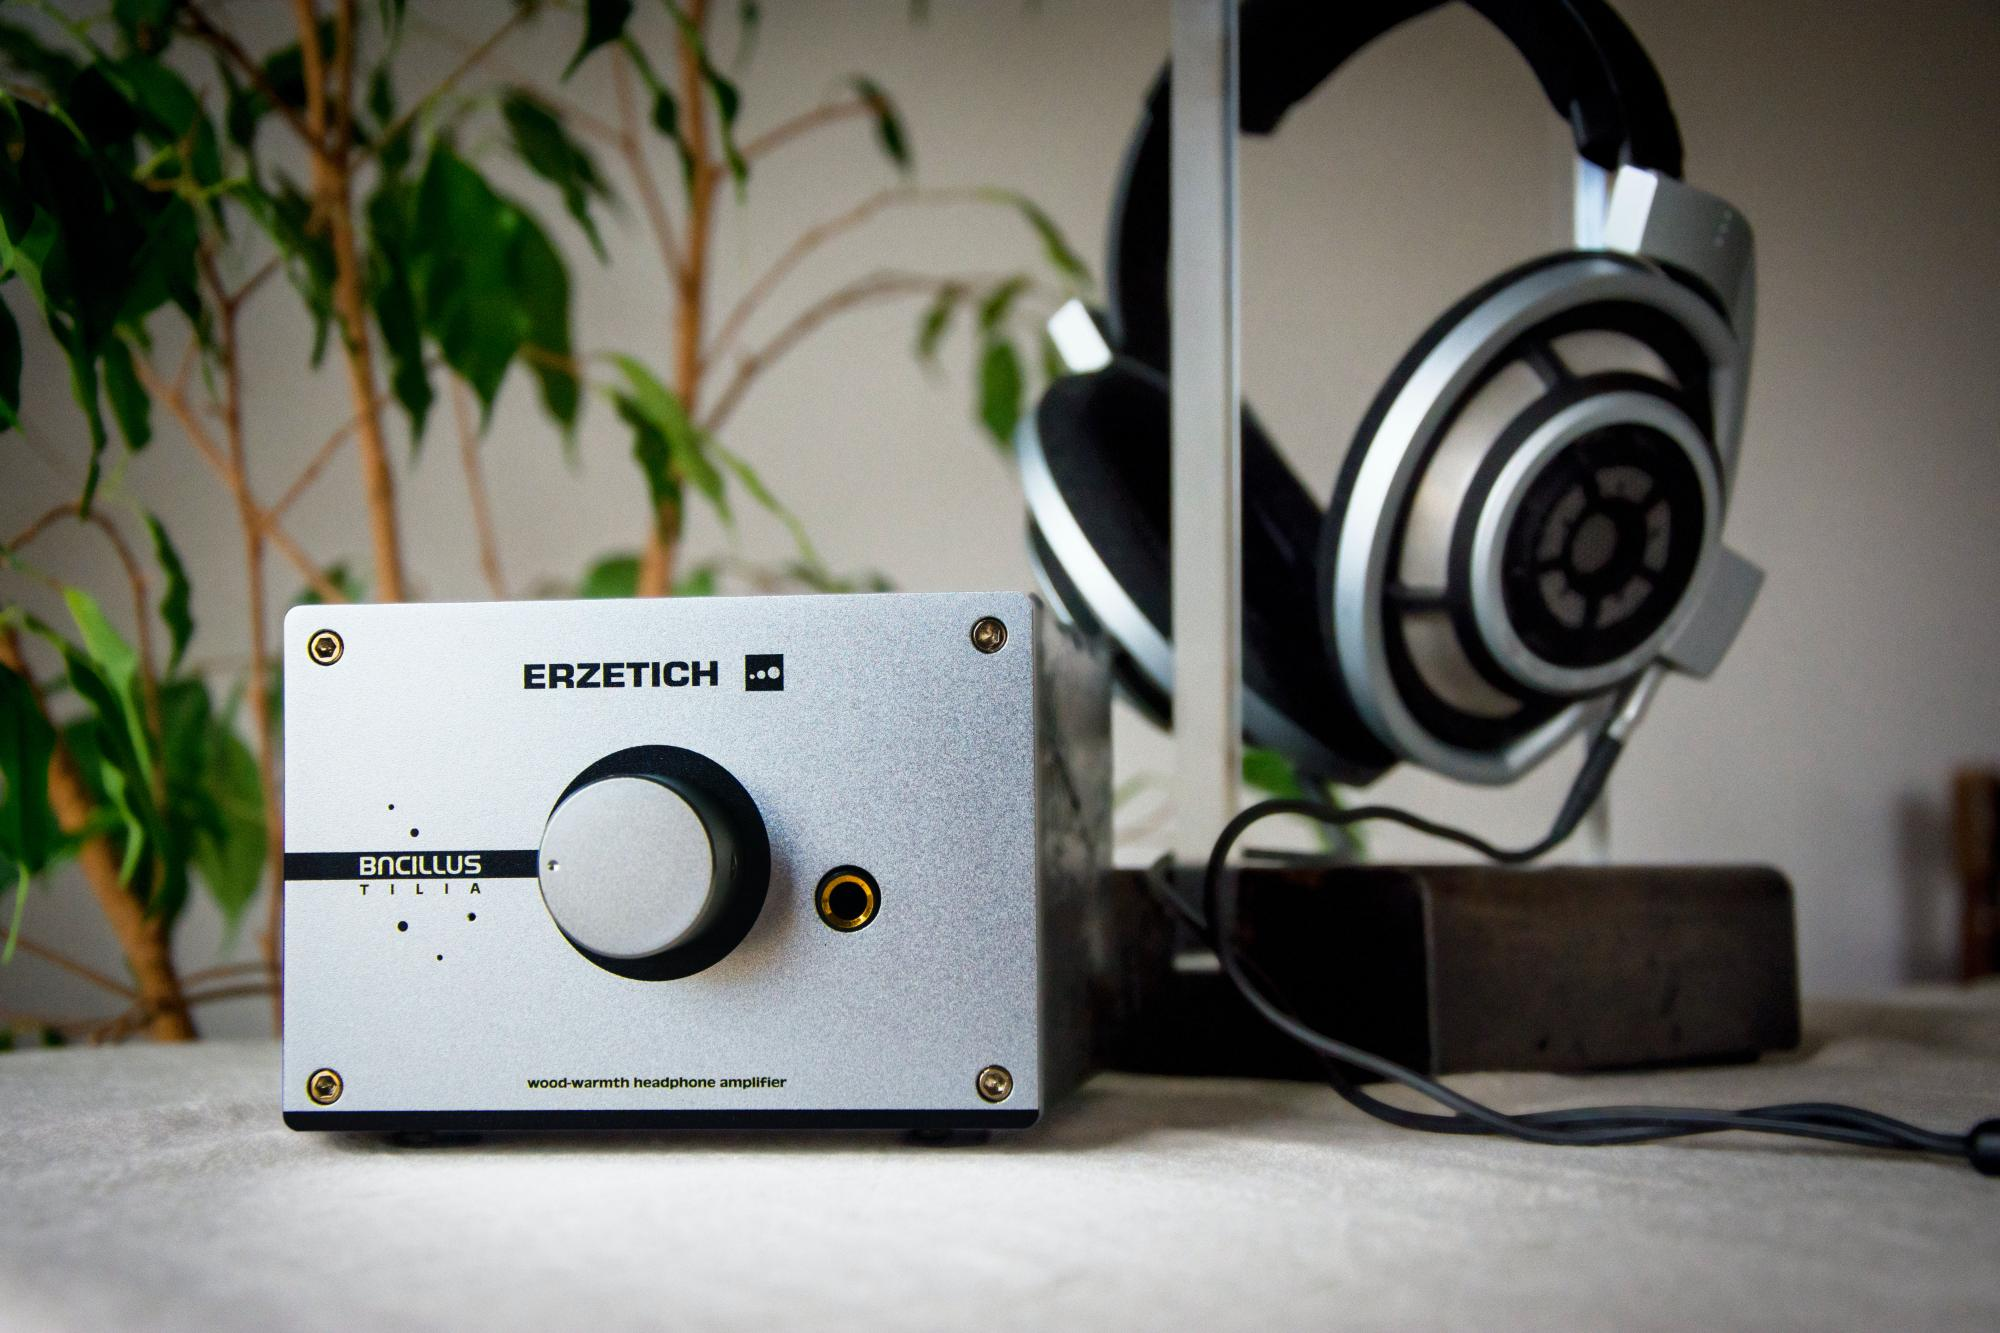 Headphone amplifier on a desk with headphones in the background by Blaz Erzetic